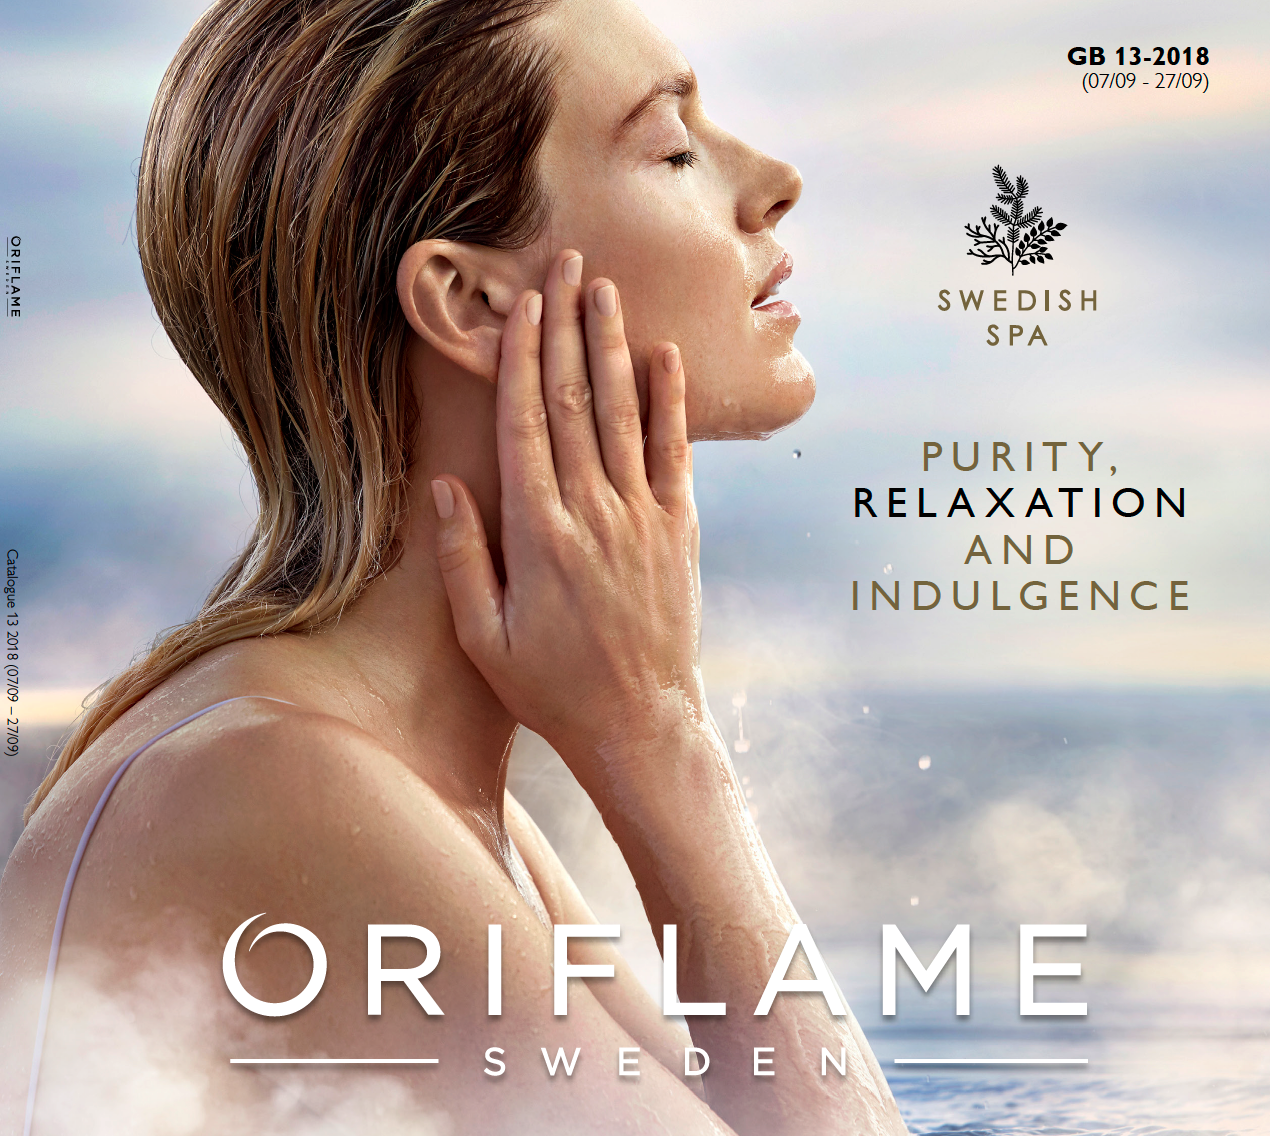 Oriflame Catalogue 13 of 2018